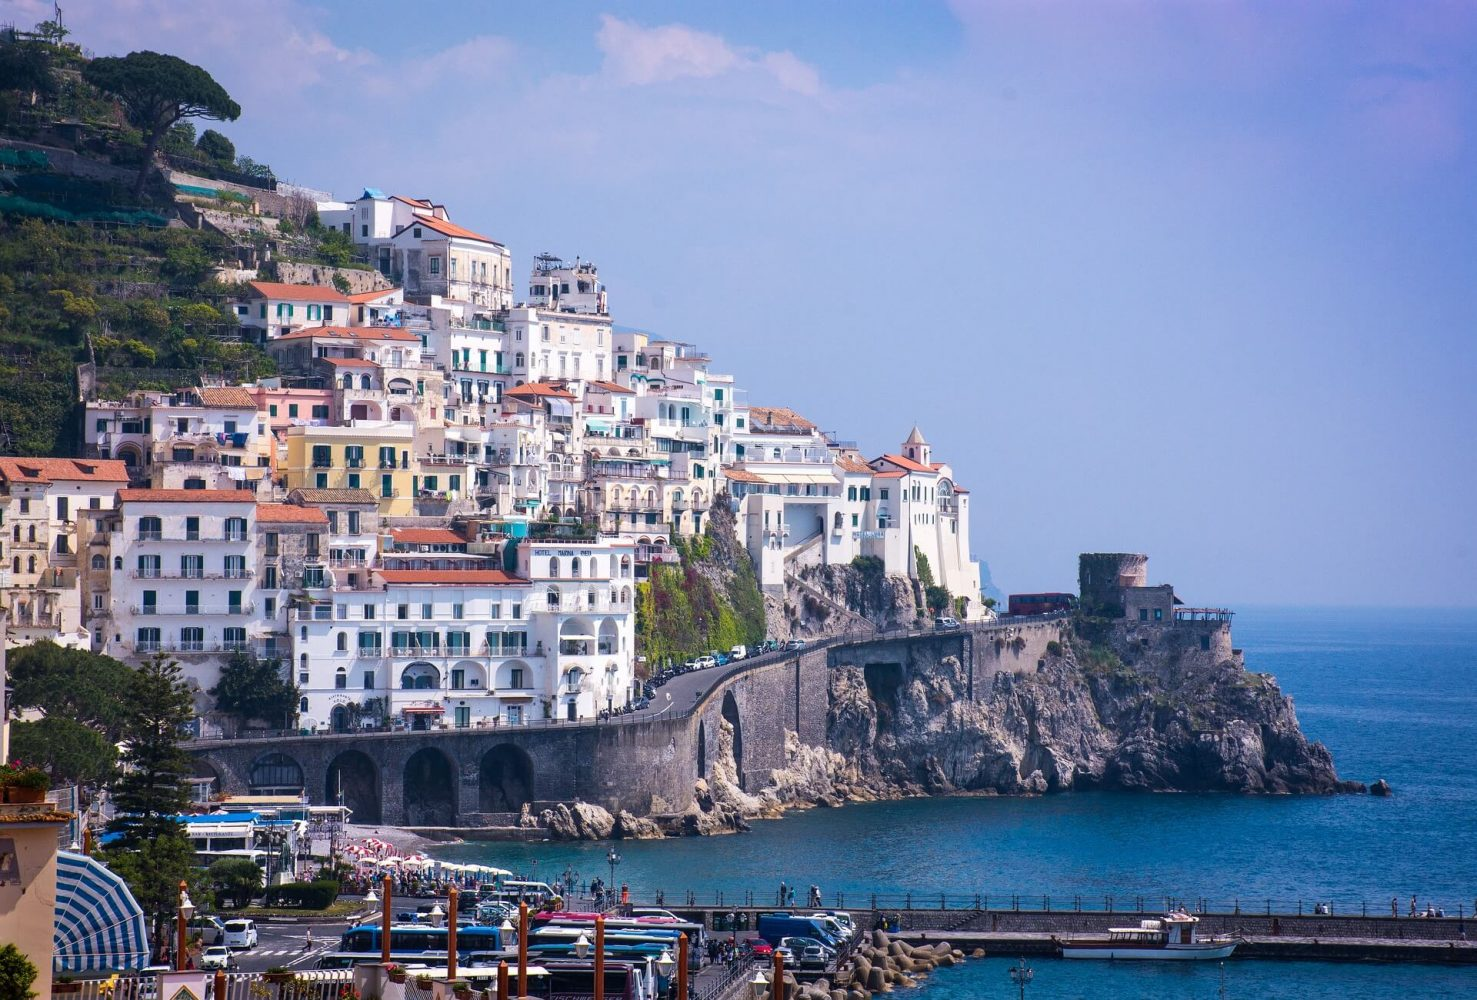 Amalfi- TOP 45 DESTINATIONS TO VISIT IN 2019 FOR INDIANS